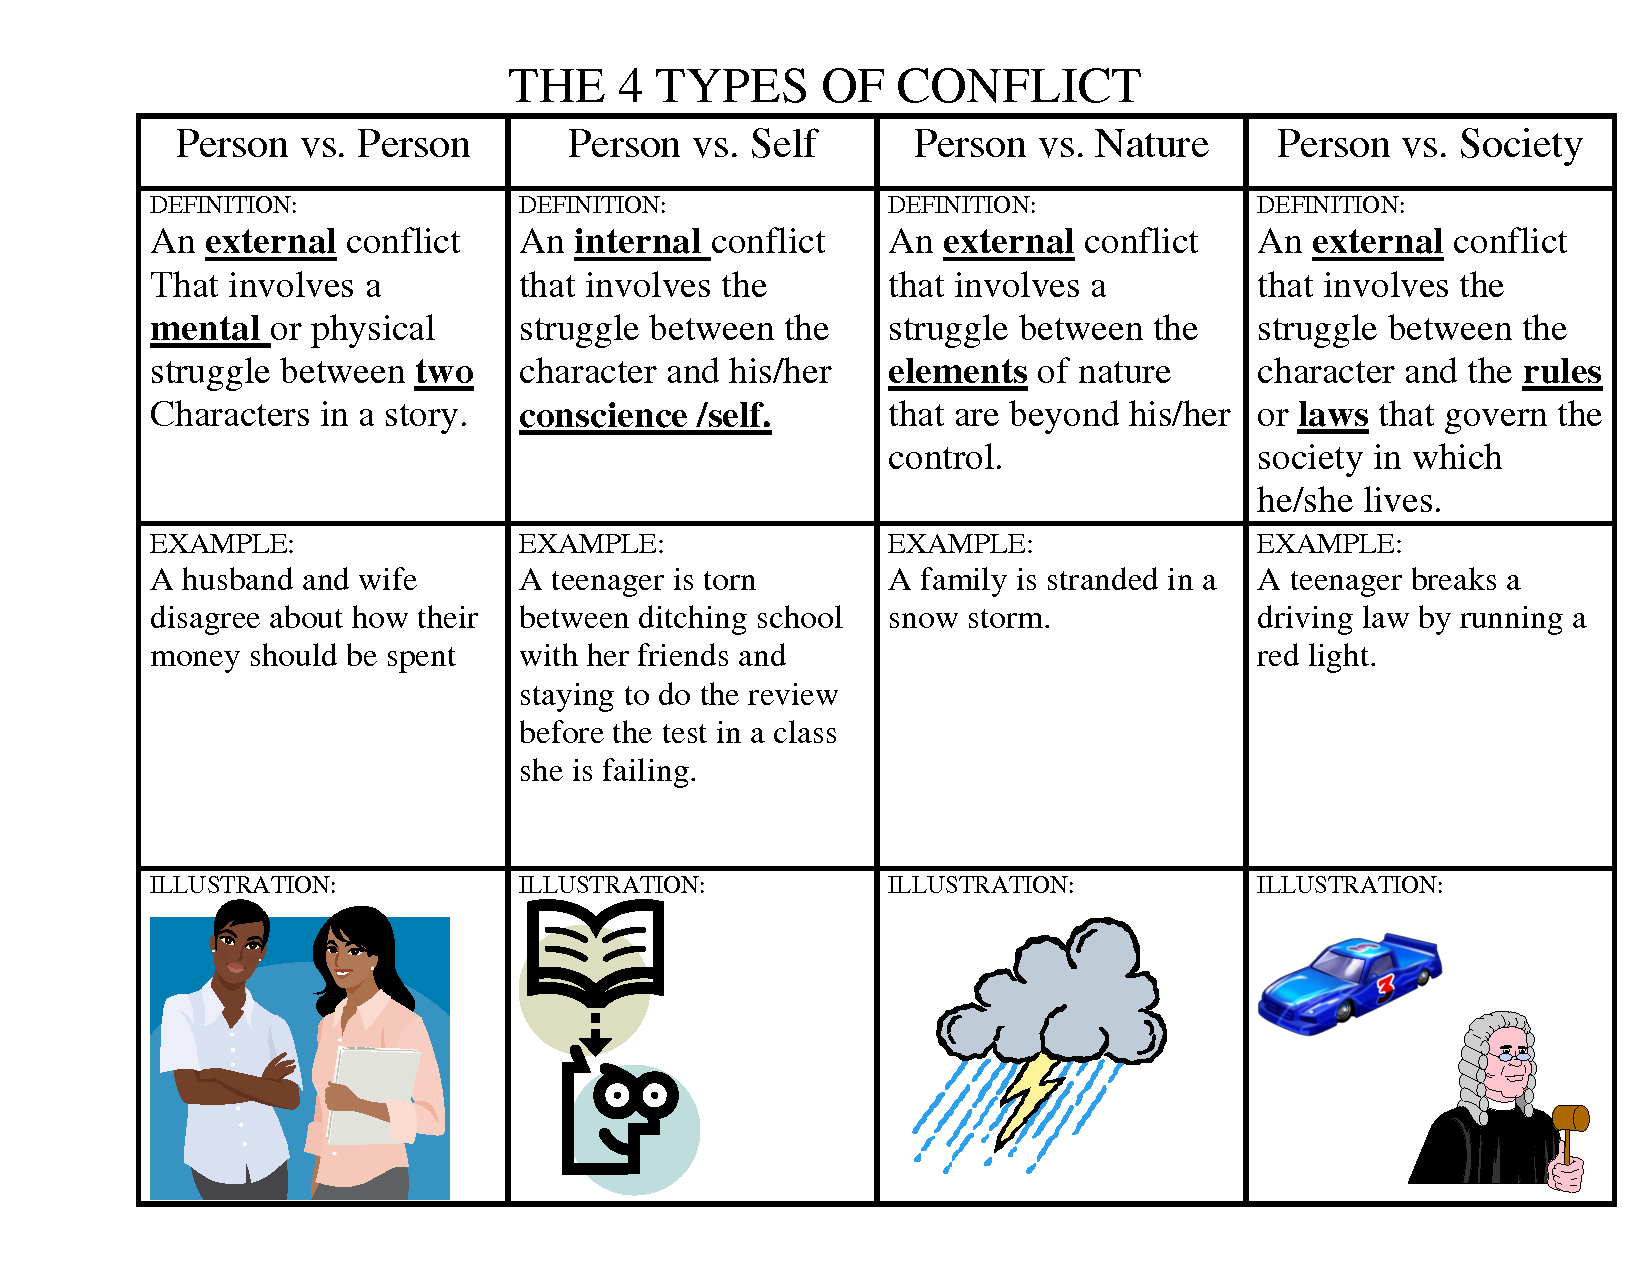 2010 THE 4 TYPES OF CONFLICT GRAPHIC ORGANIZER   Types of conflict [ 1275 x 1650 Pixel ]